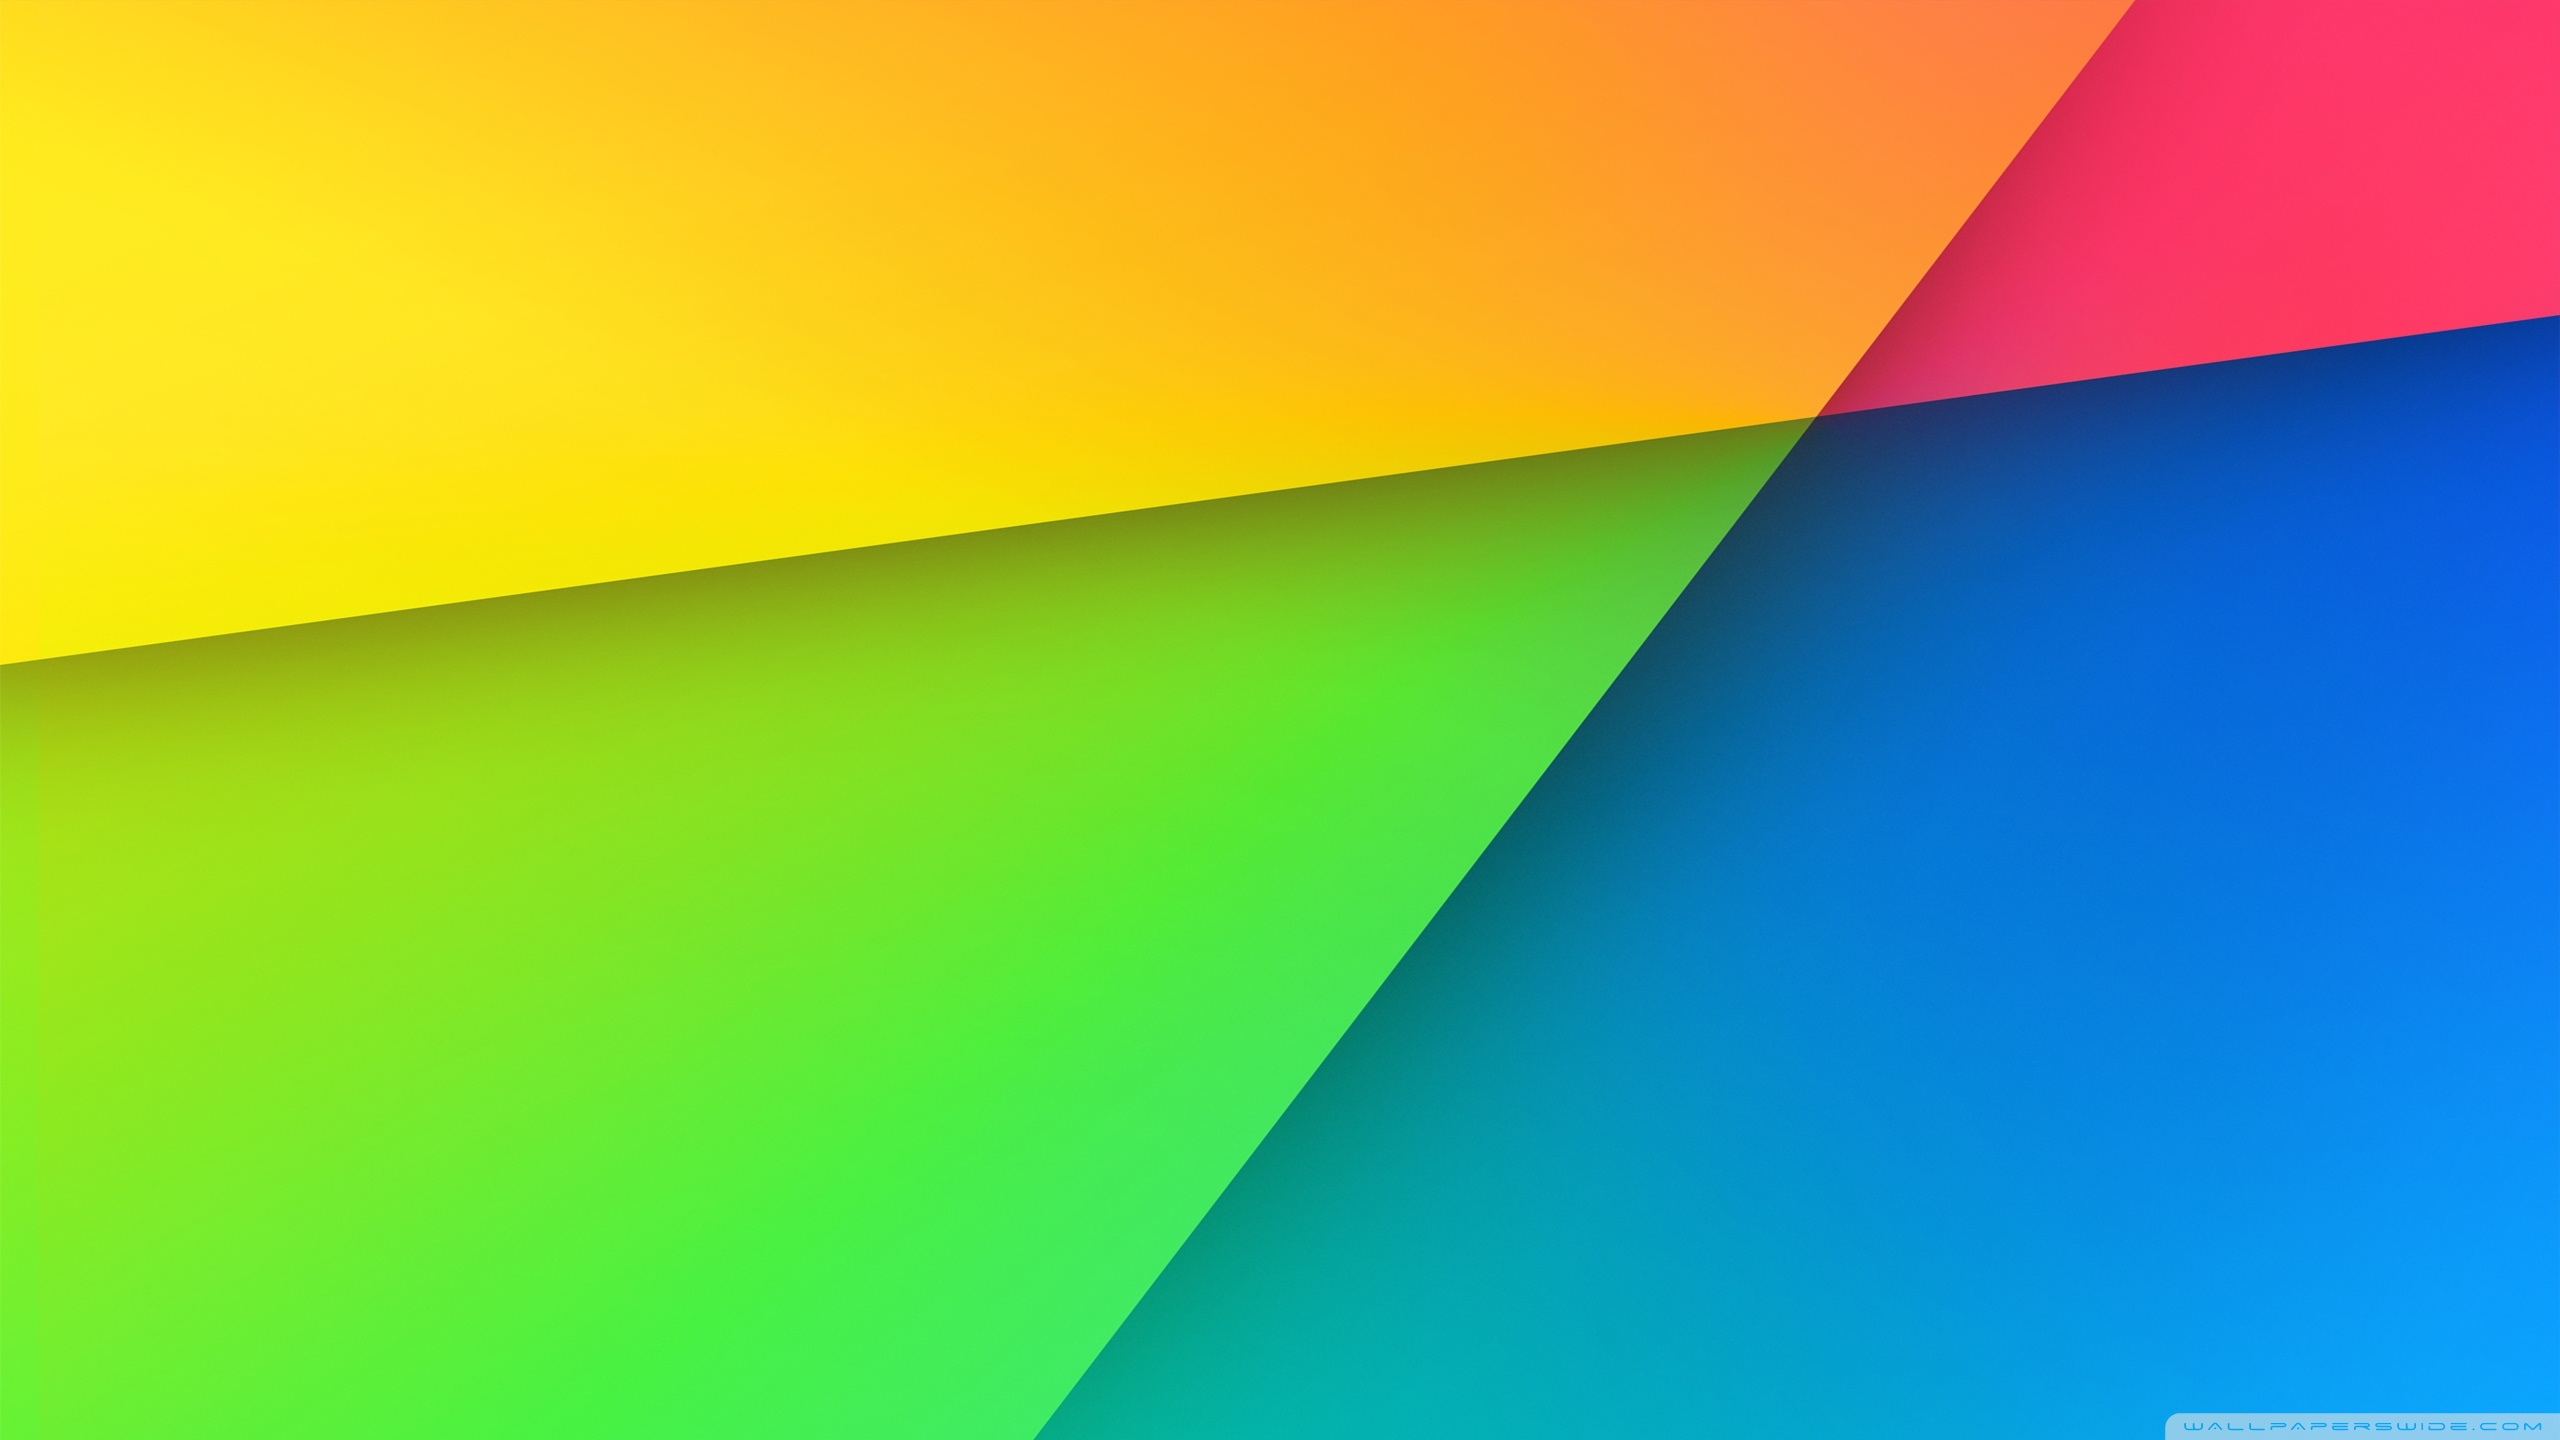 Google Nexus Wallpaper HD